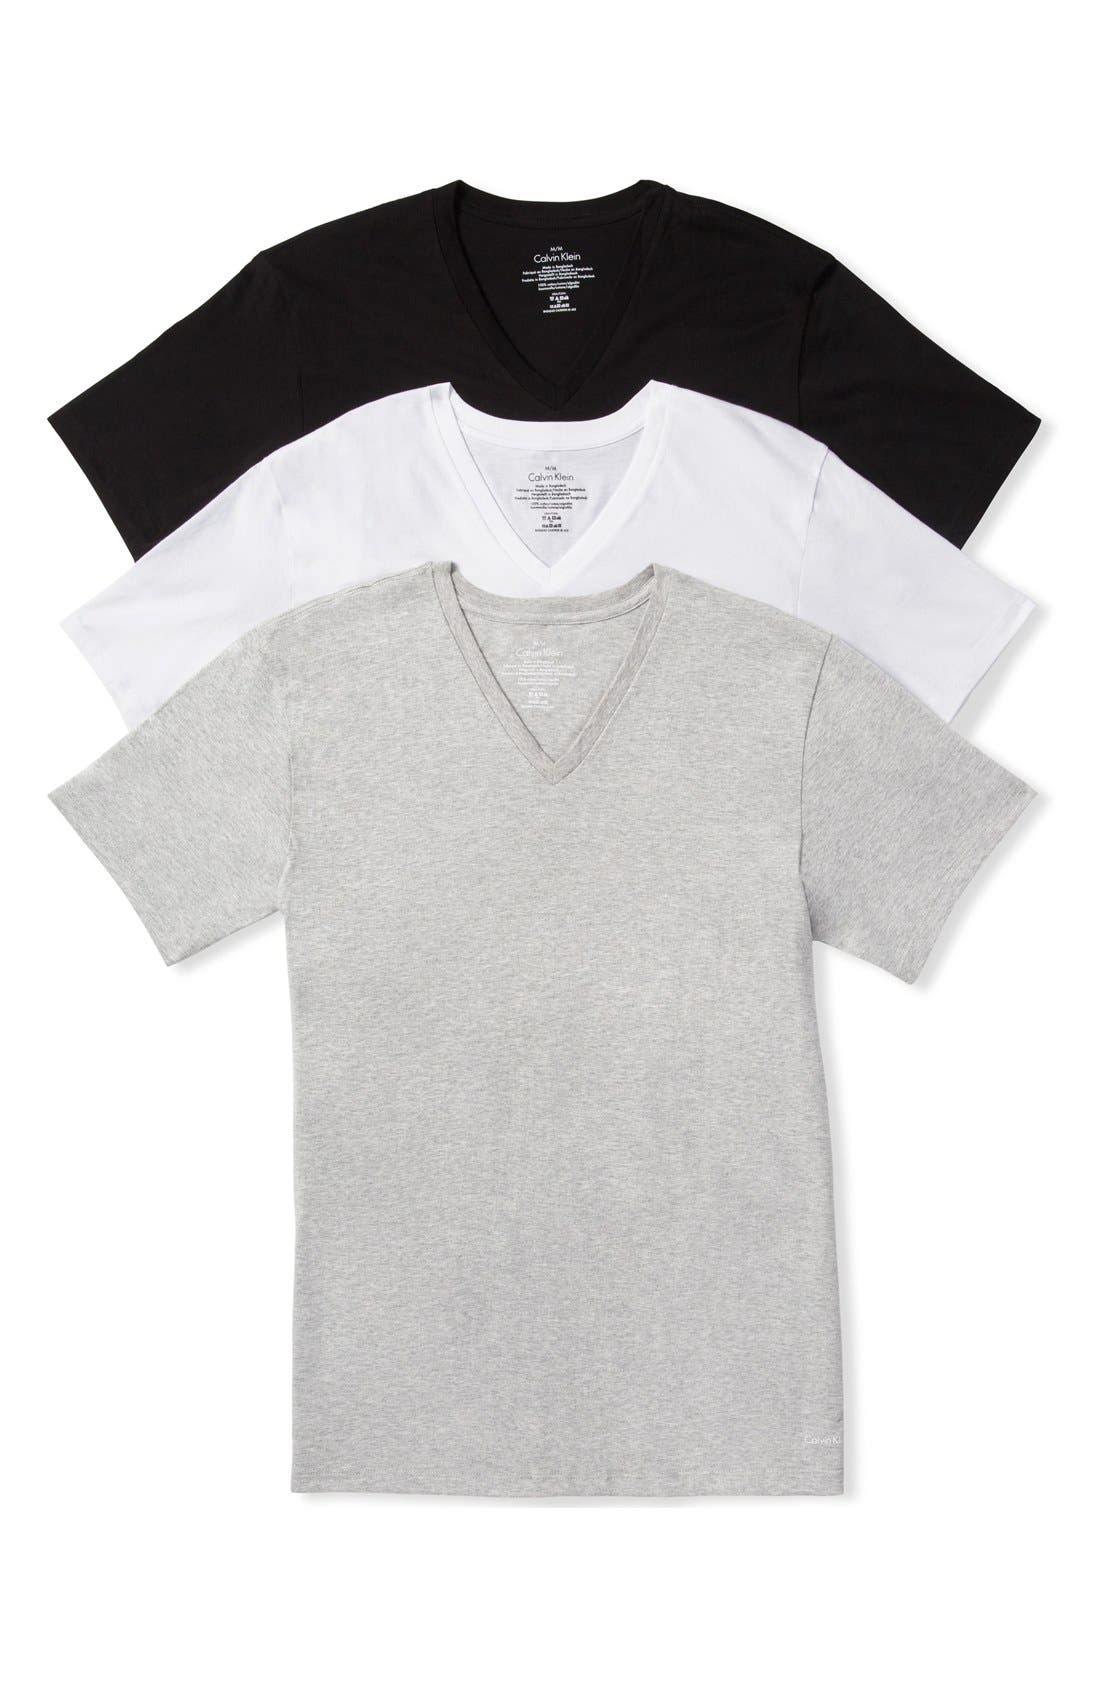 Assorted 3-Pack Classic Fit Cotton V-Neck T-Shirt,                         Main,                         color, Heather Grey/ White/ Black